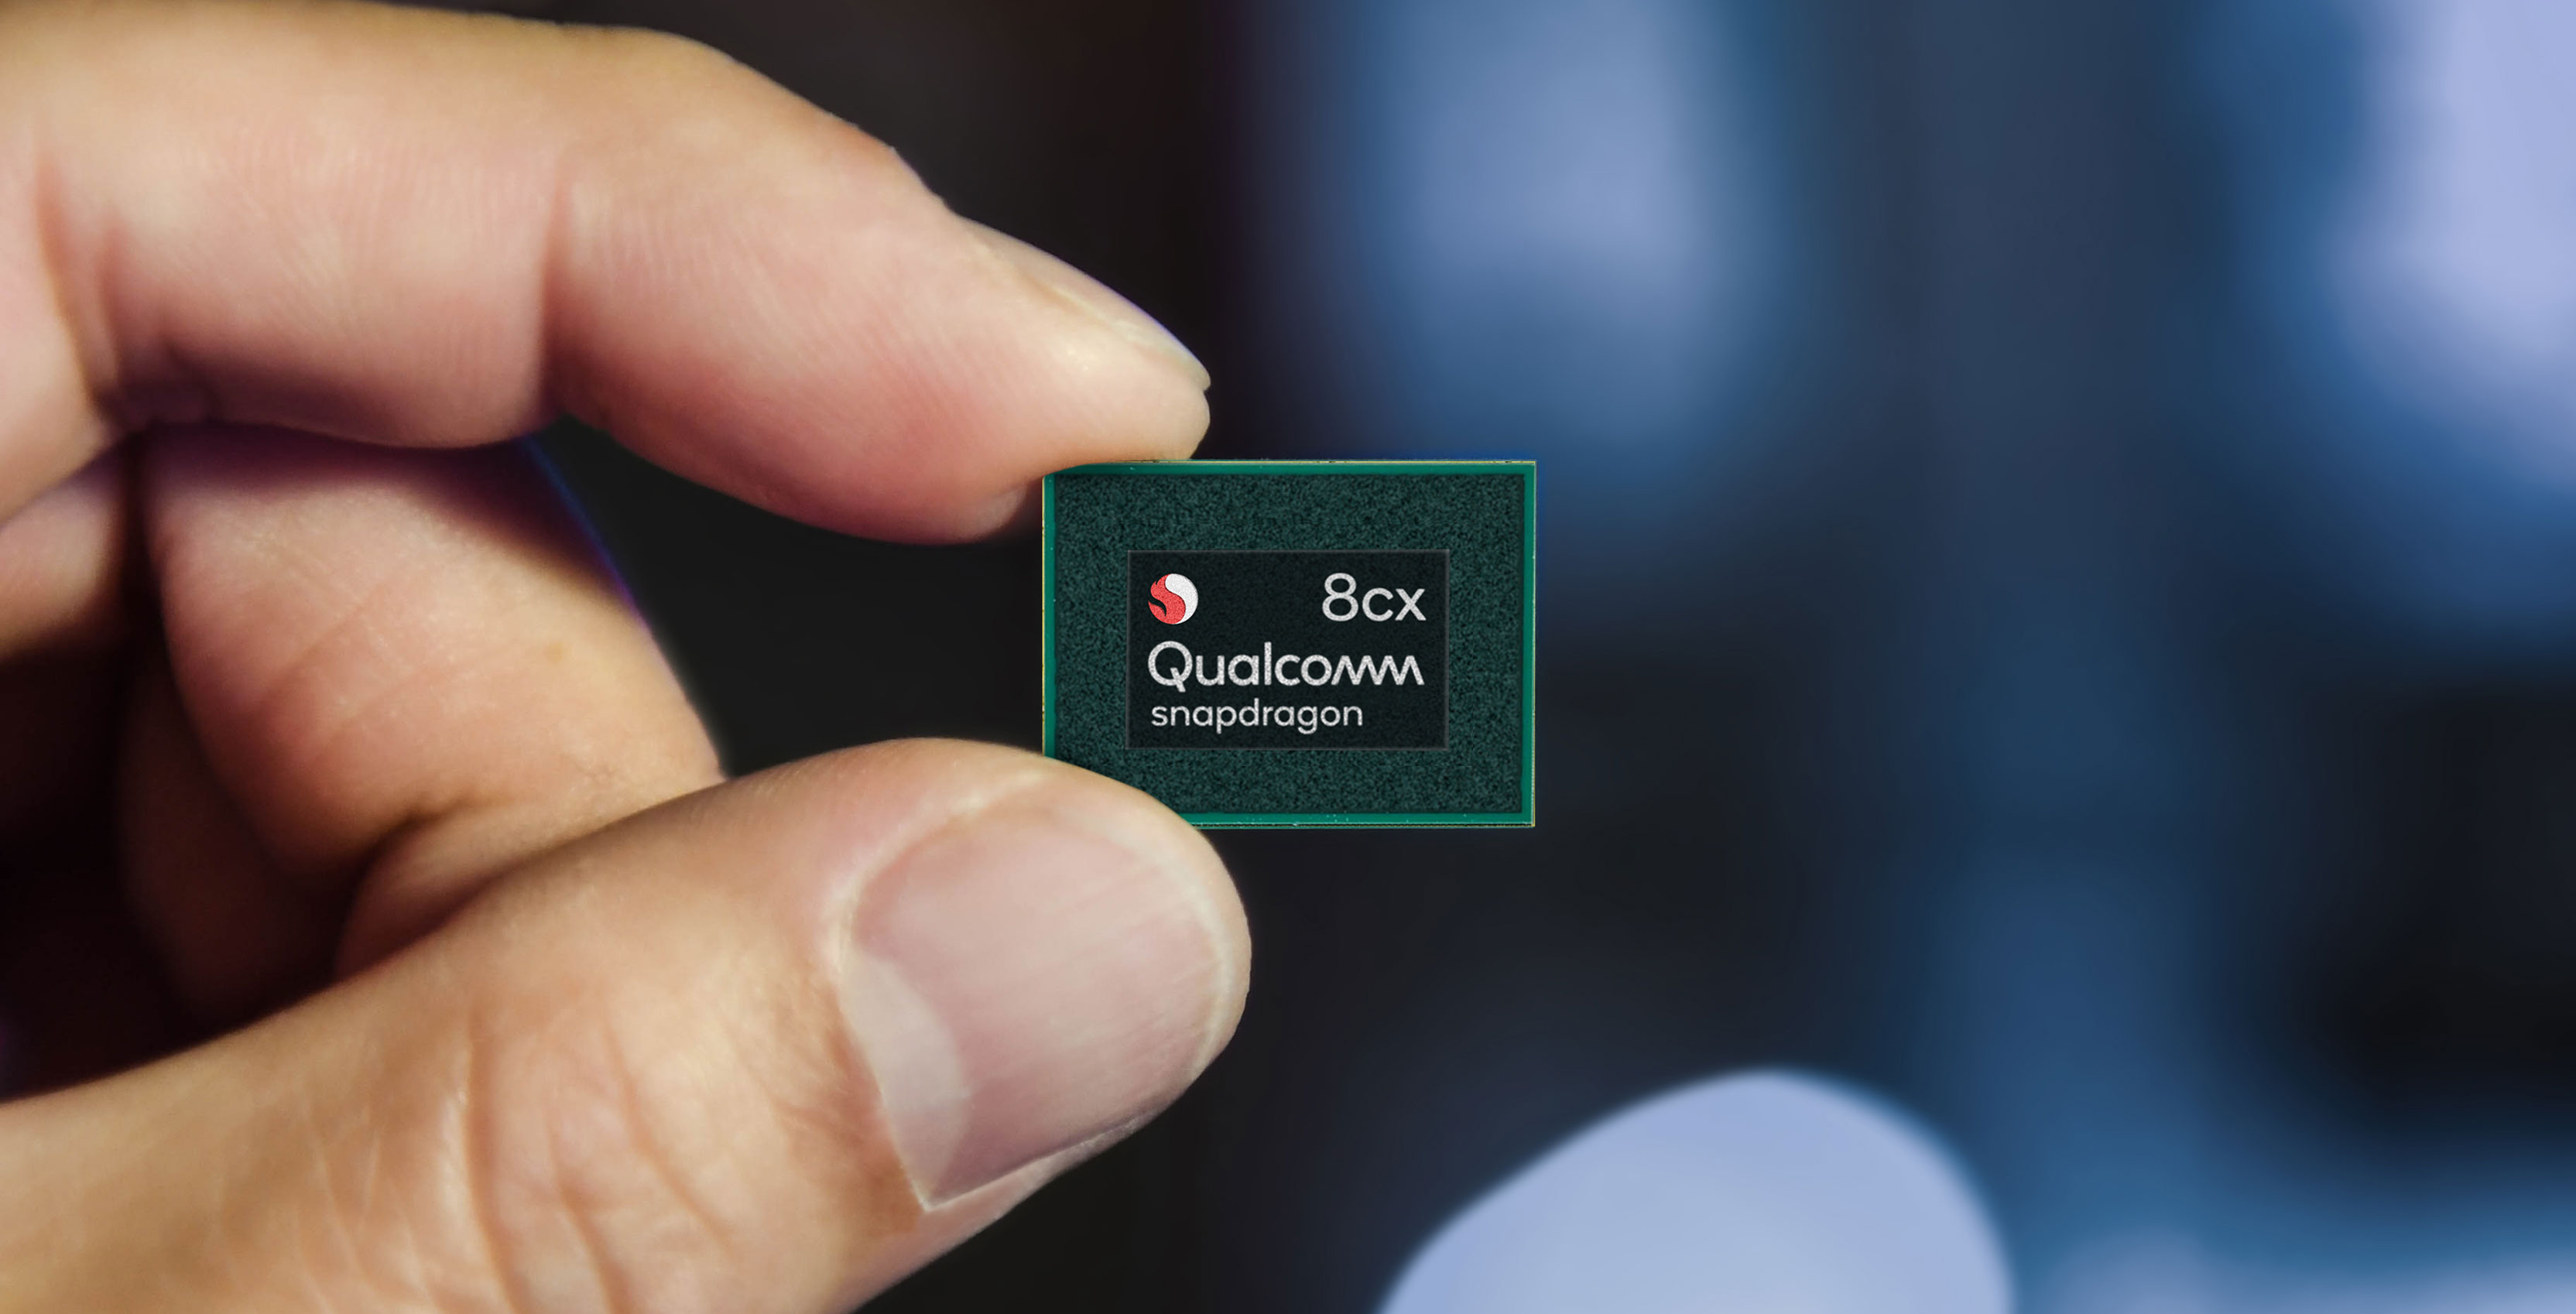 Snapdragon's new 8cx PC chip